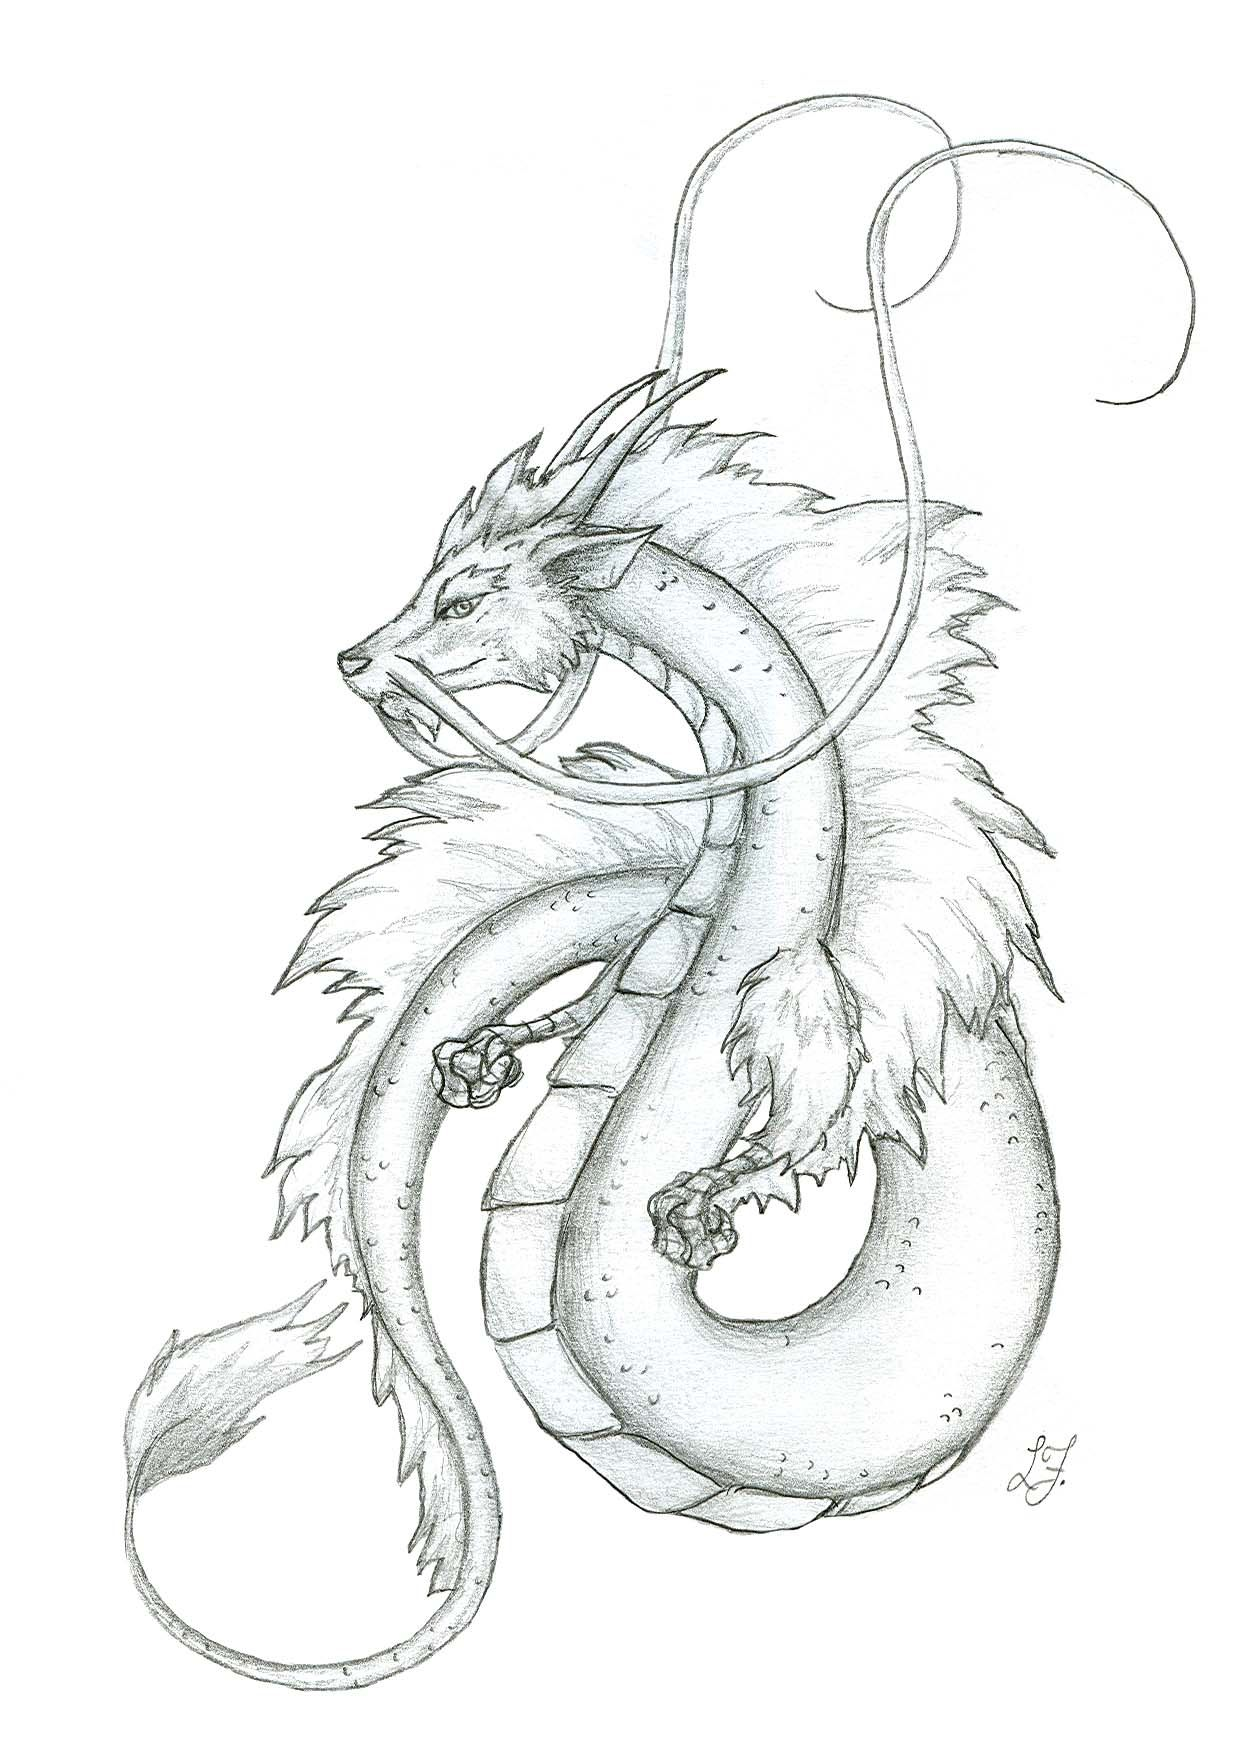 How To Draw A Japanese Dragon : japanese, dragon, Small, Japanese, Dragon, Lizzy23, DeviantART, Sketch,, Drawing,, Chinese, Drawing